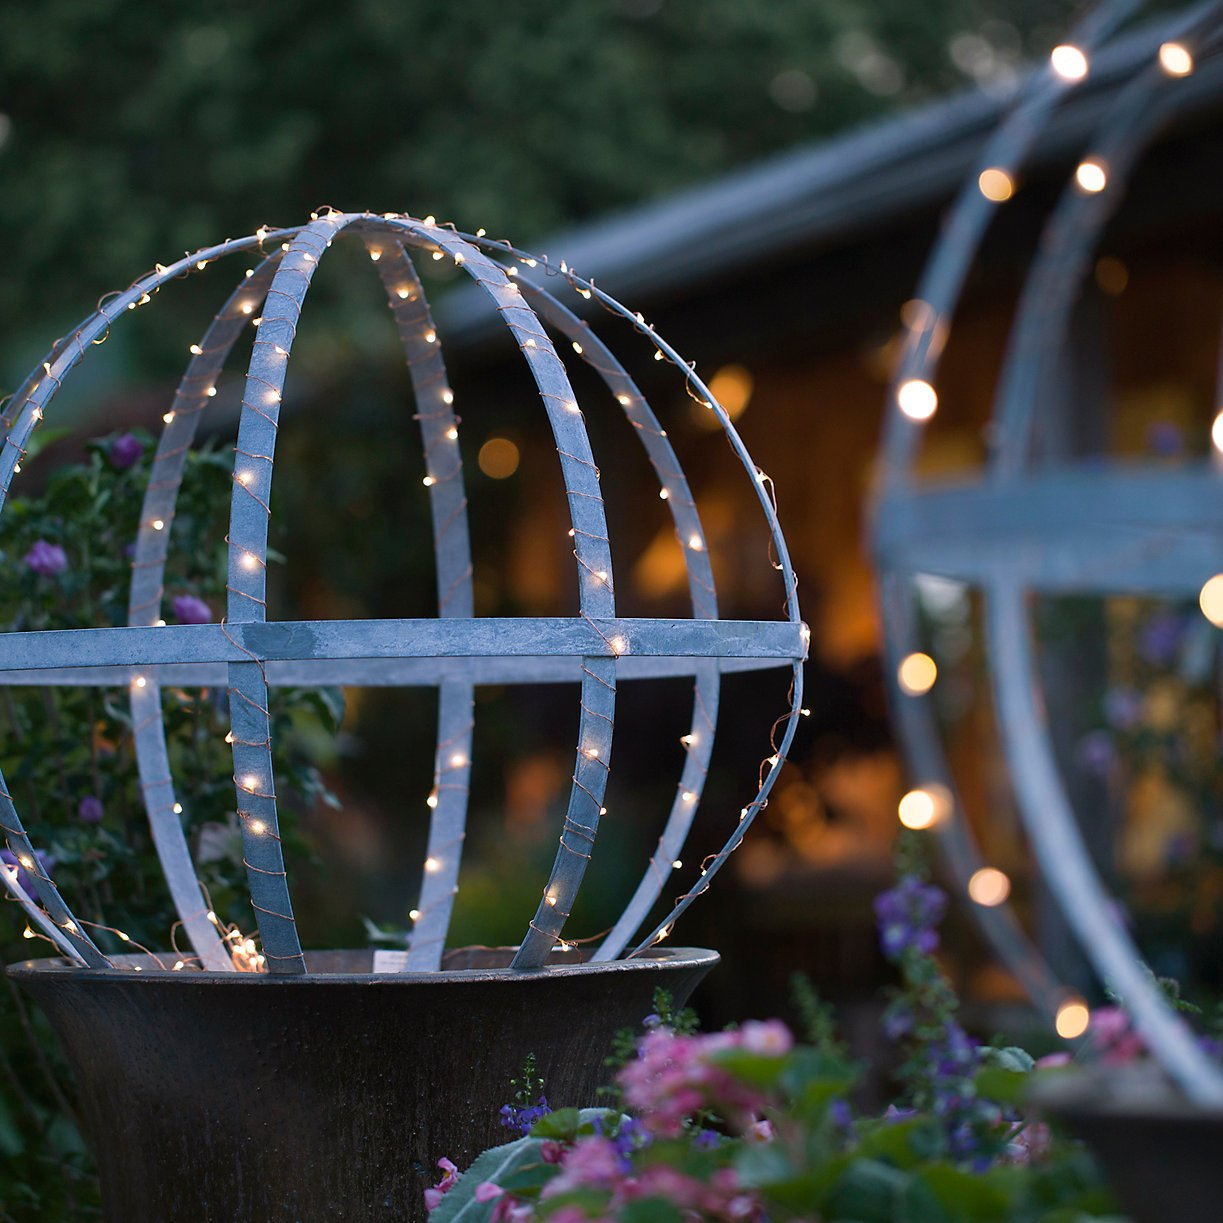 wrap-lights-around-outdoor-lawn-accessories-give-your-yard-glow.jpg